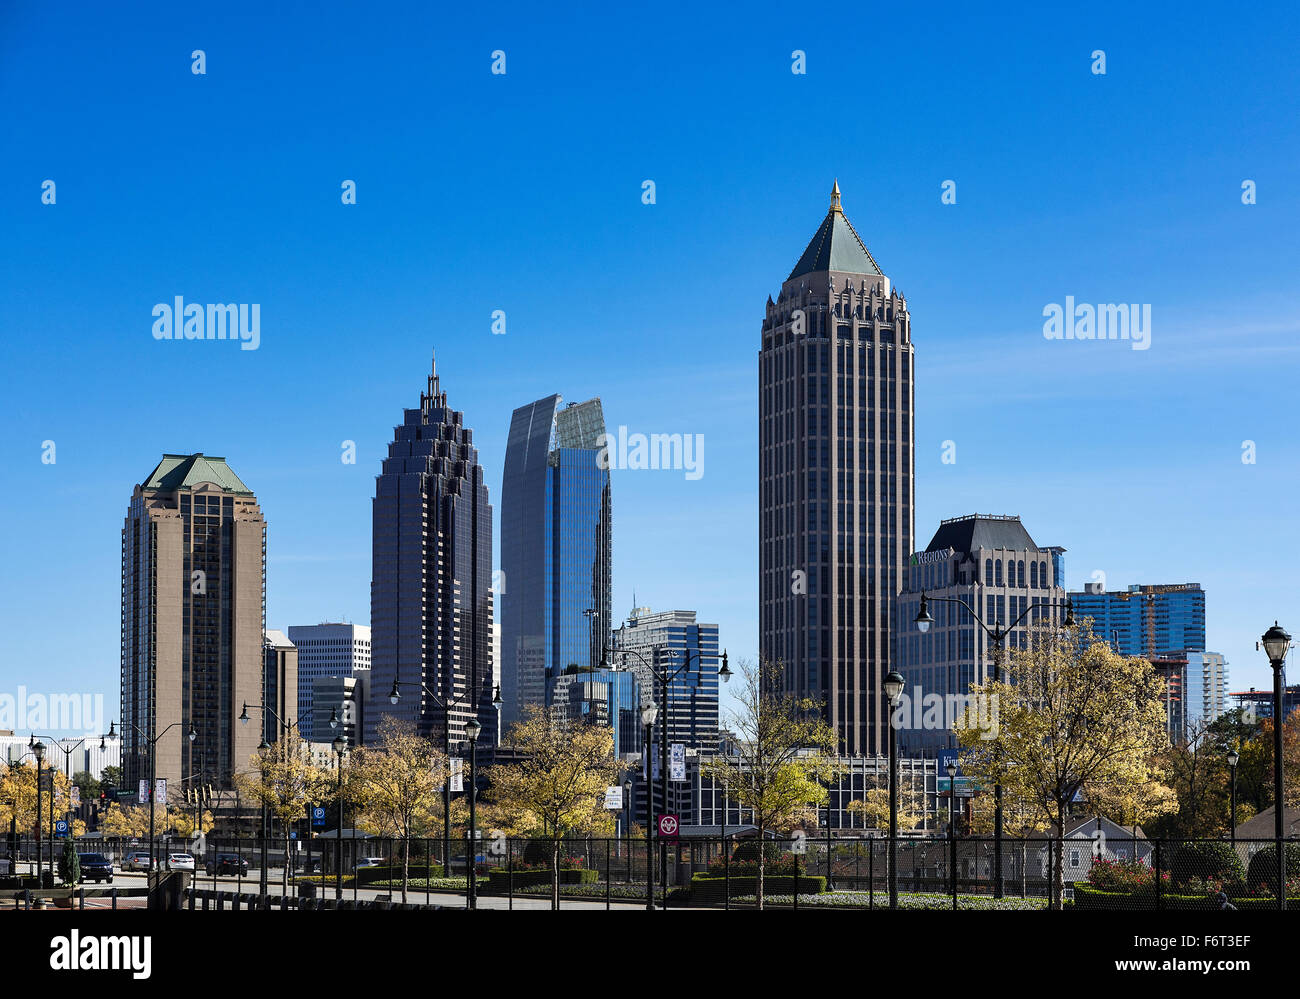 Downtown skyline, Atlanta, Georgia, USA - Stock Image